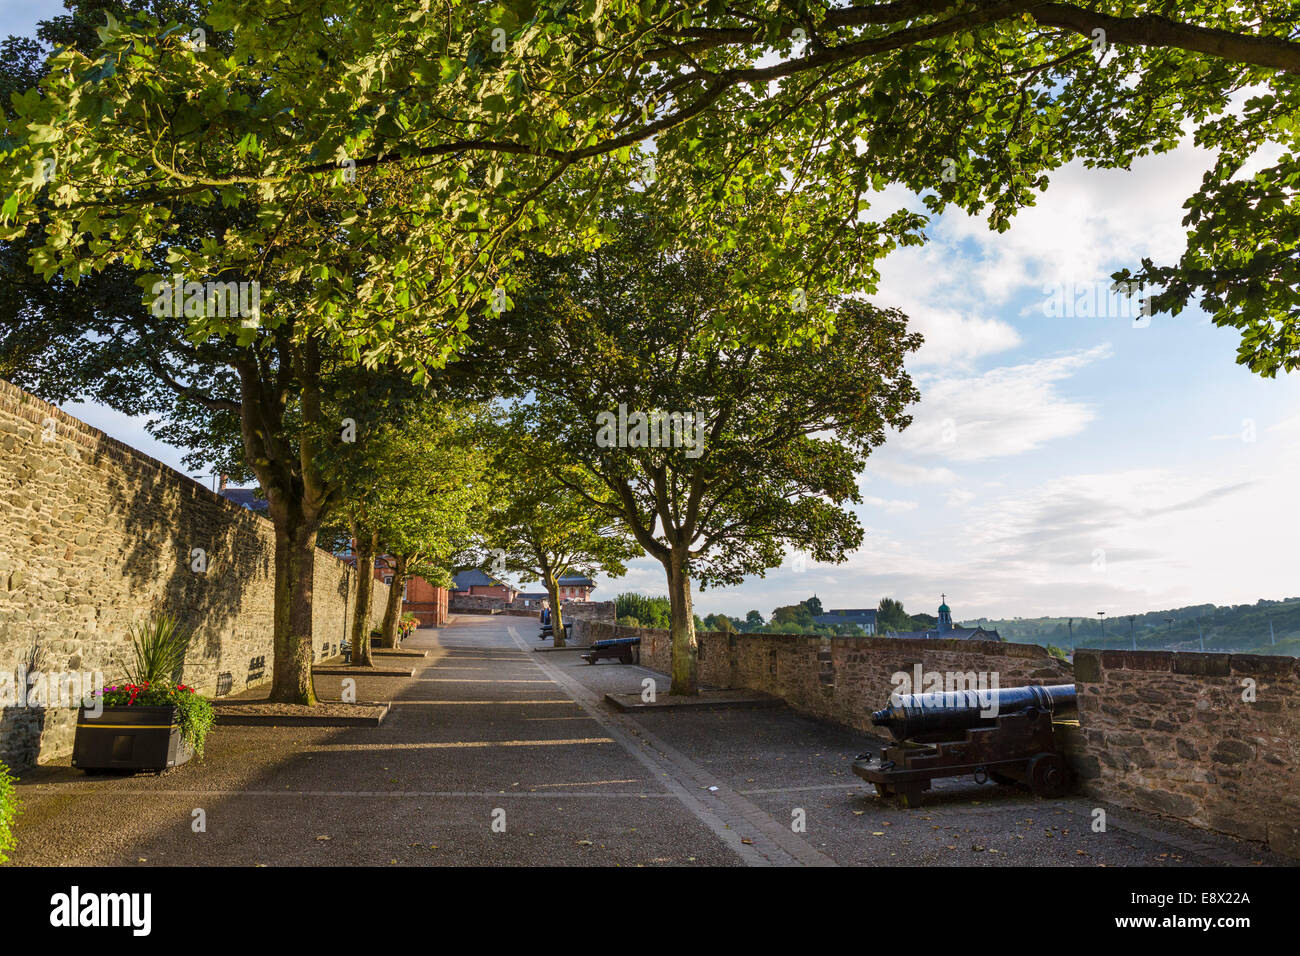 The old city walls in the early evening, Derry, County Londonderry, Northern Ireland, UK - Stock Image